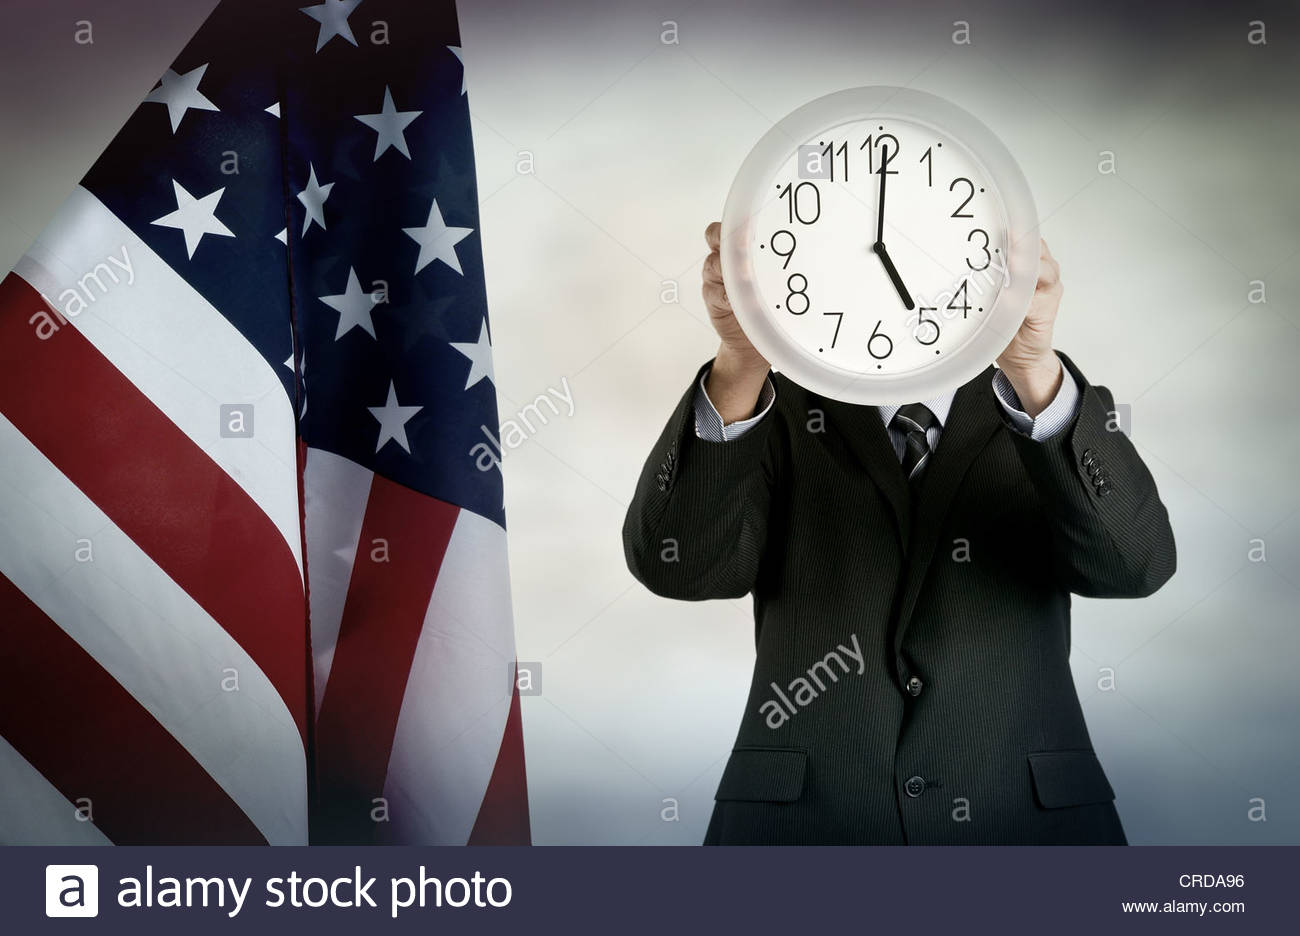 american time - Stock Image